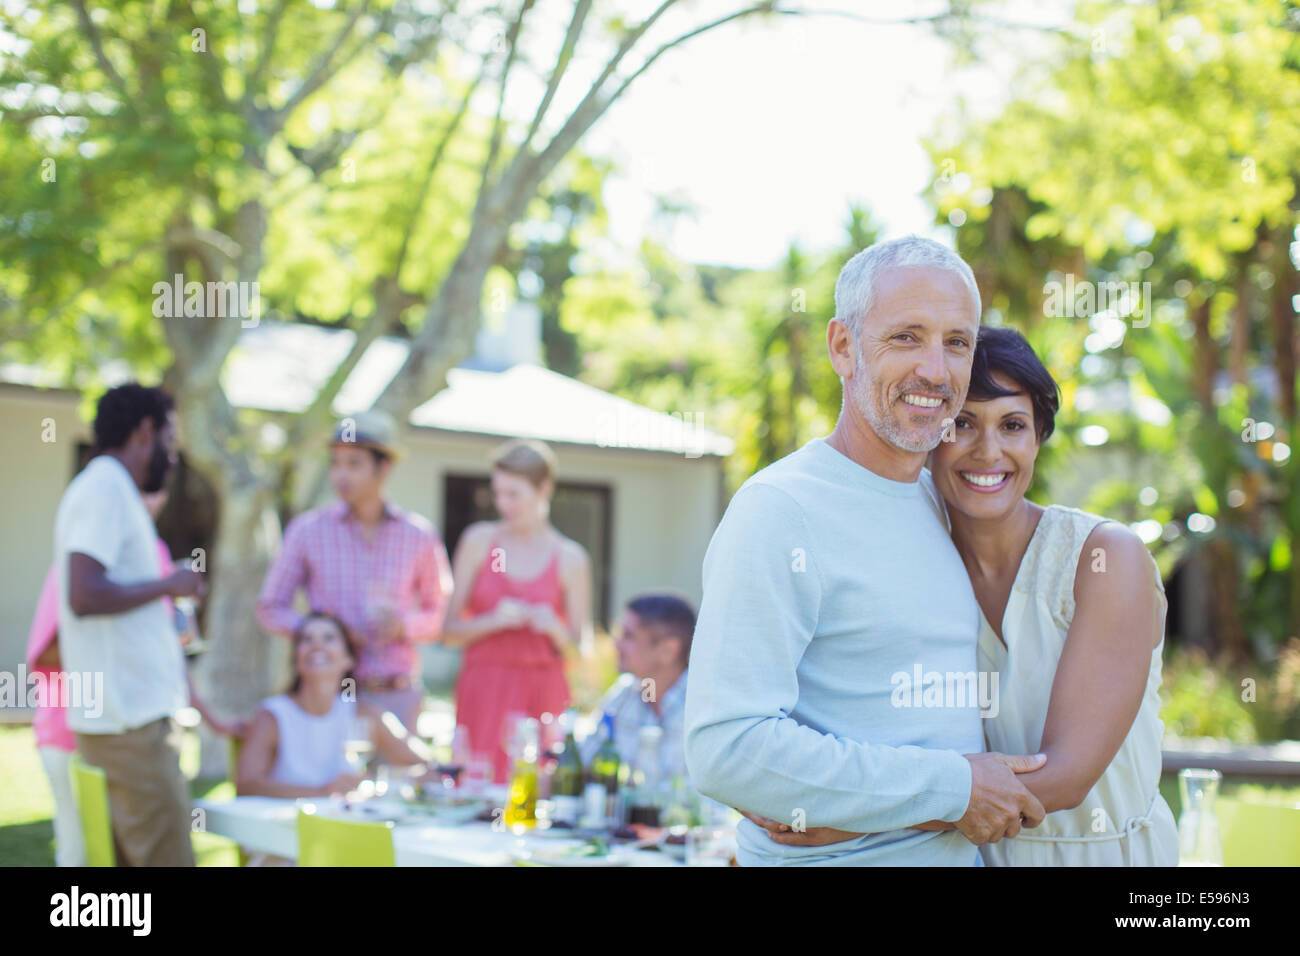 Couple hugging at party - Stock Image